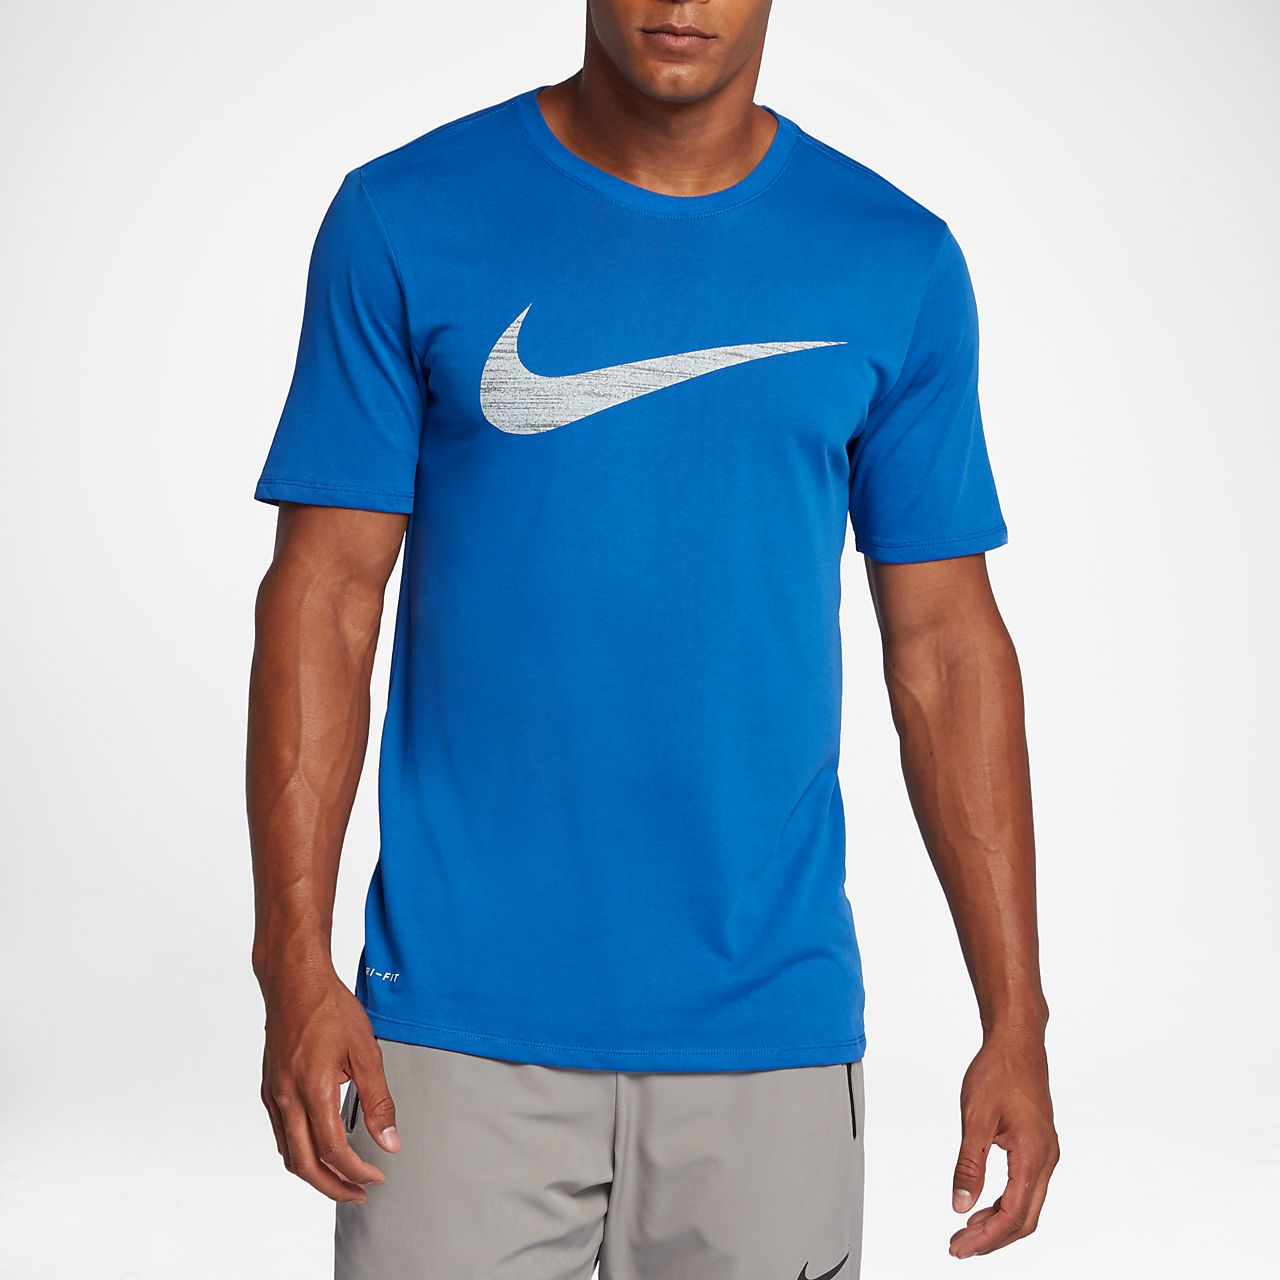 Nike Dry Swoosh Men's Training T-Shirts Black/White